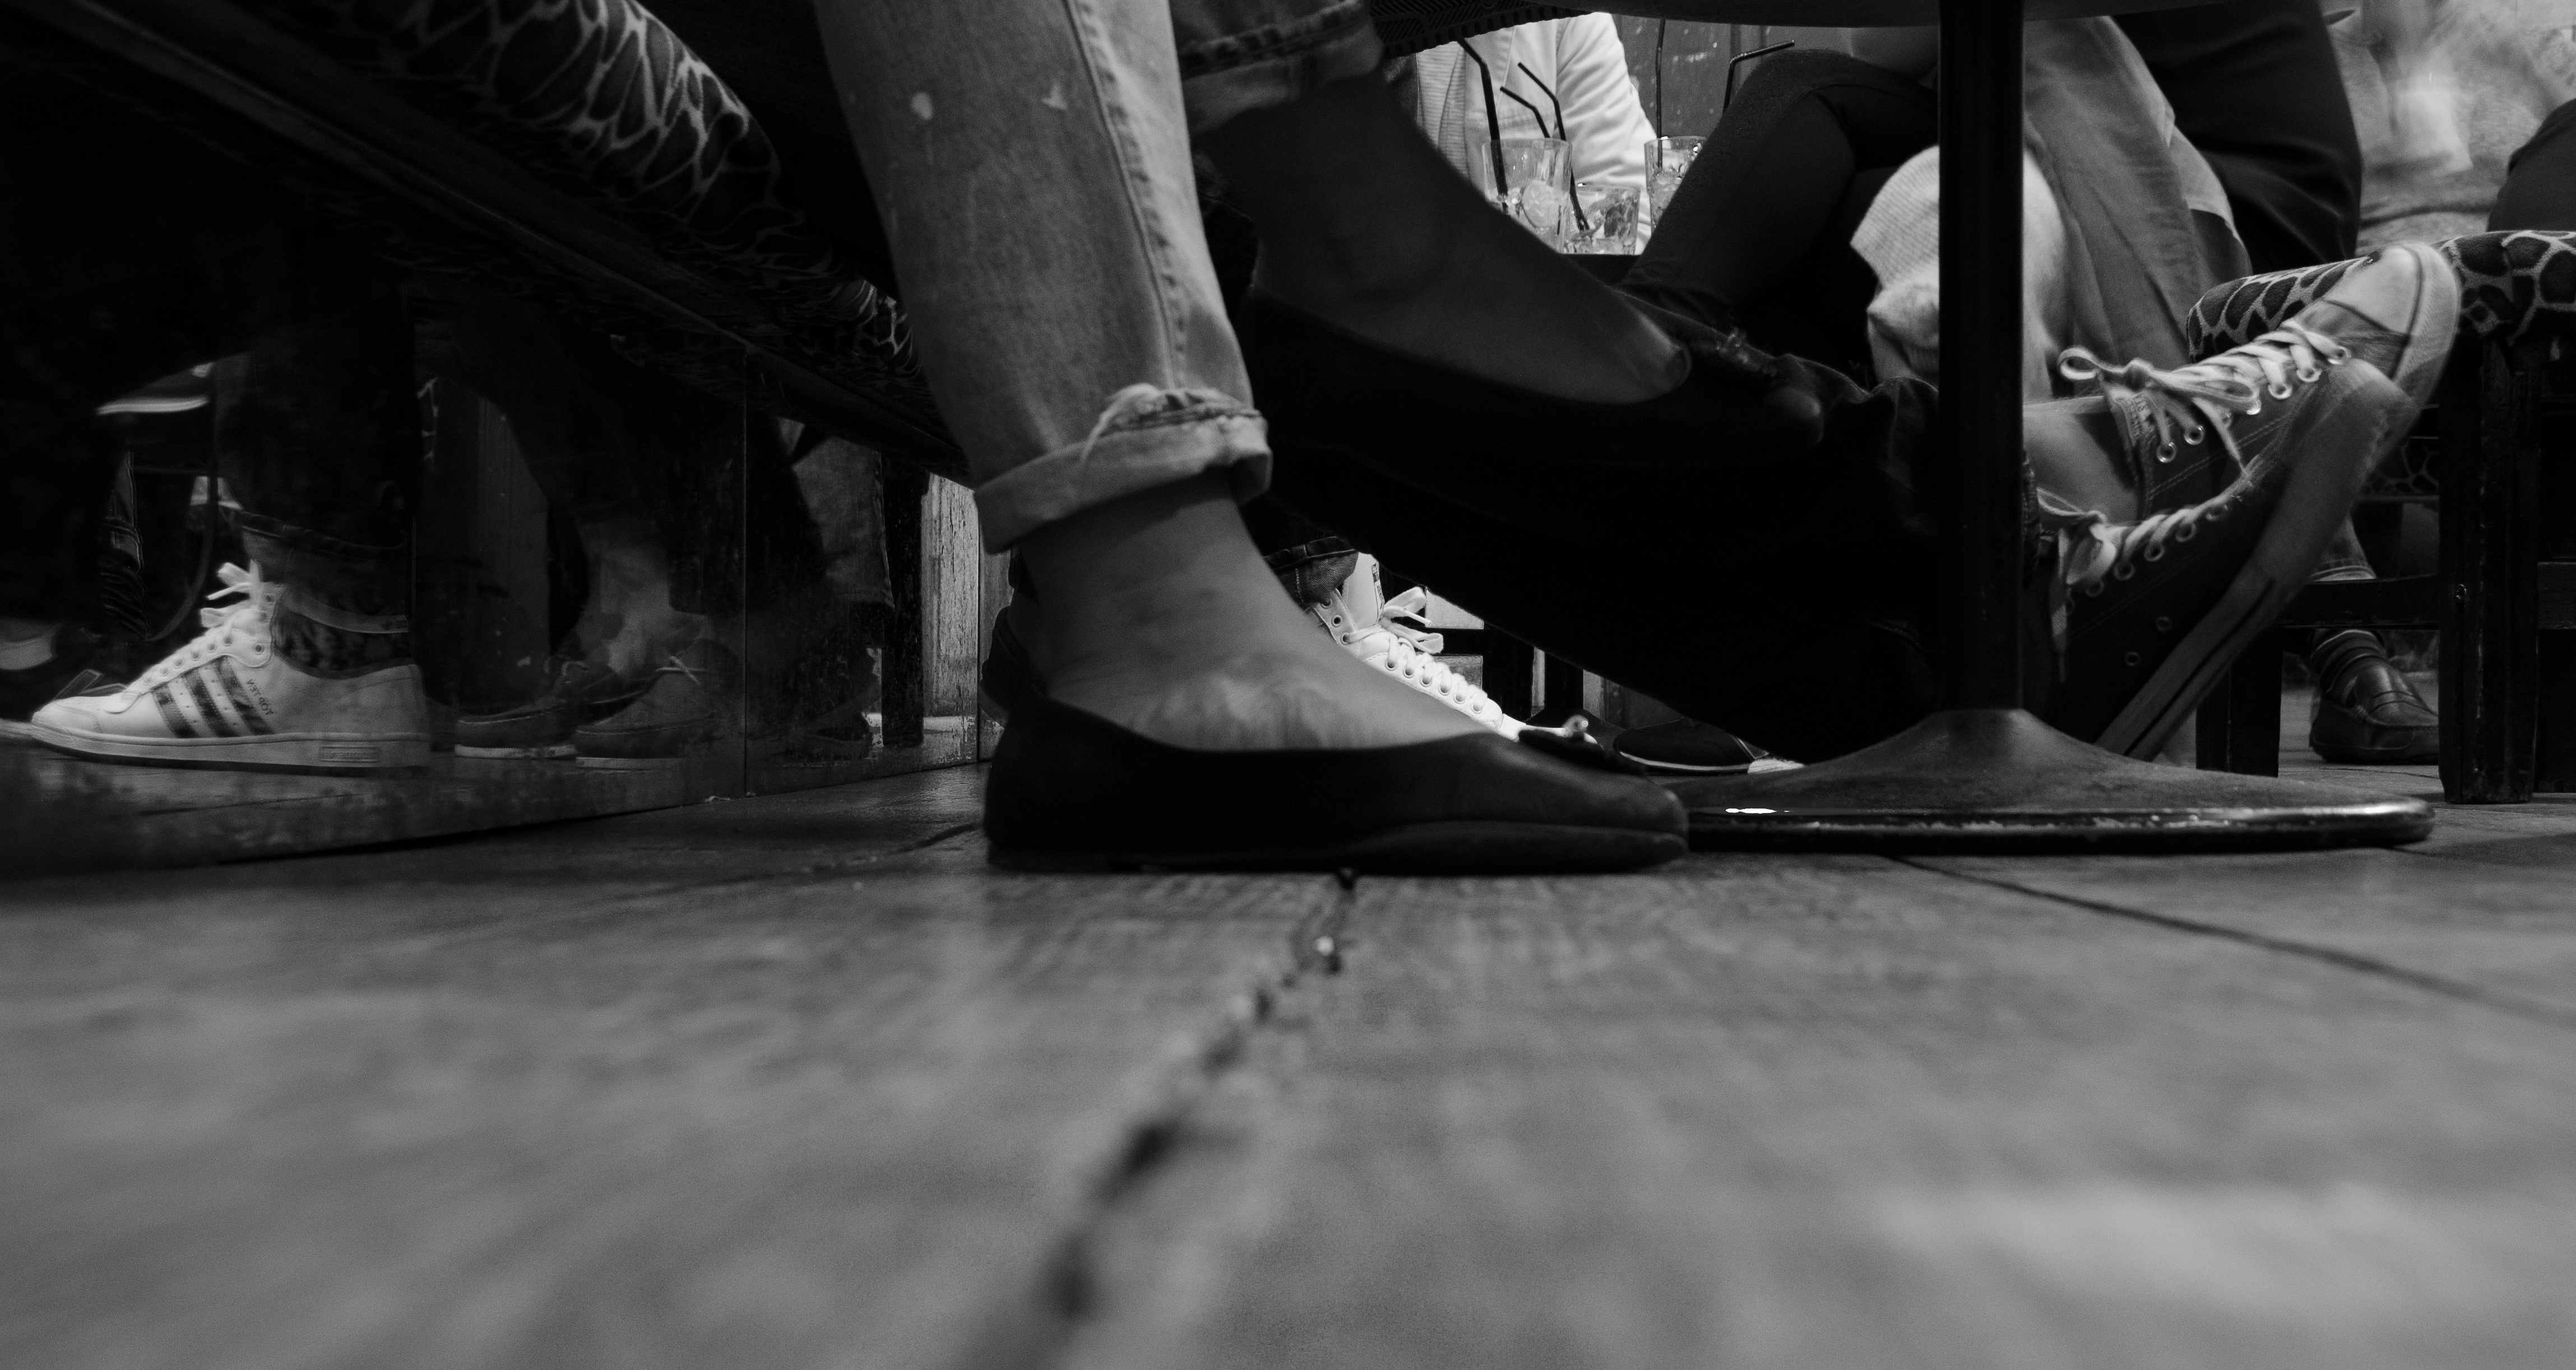 People wearing Shoes, Activity, Footwear, Human, People, HQ Photo